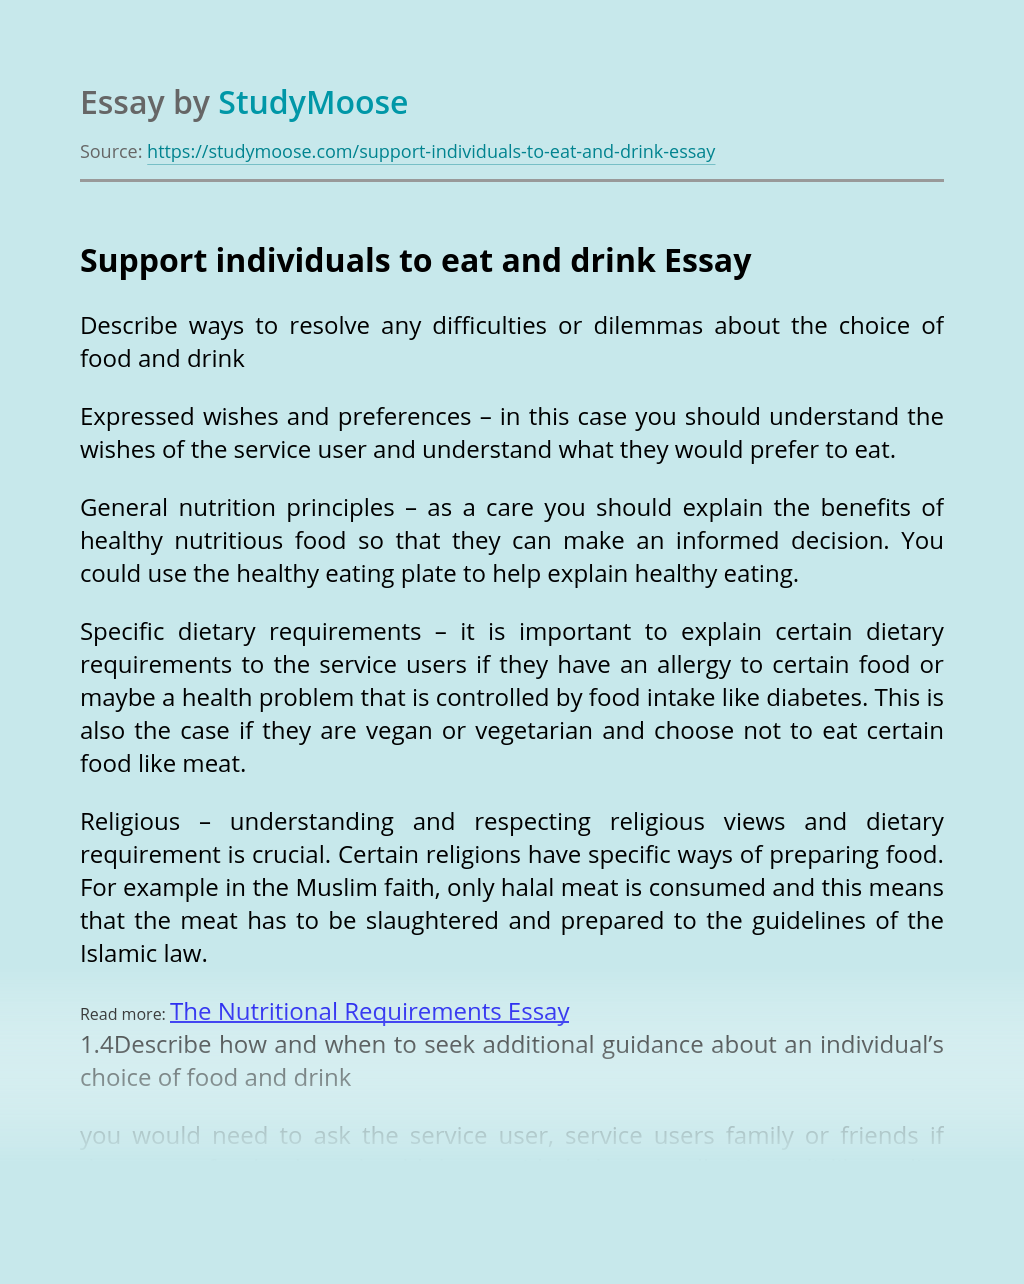 Support individuals to eat and drink